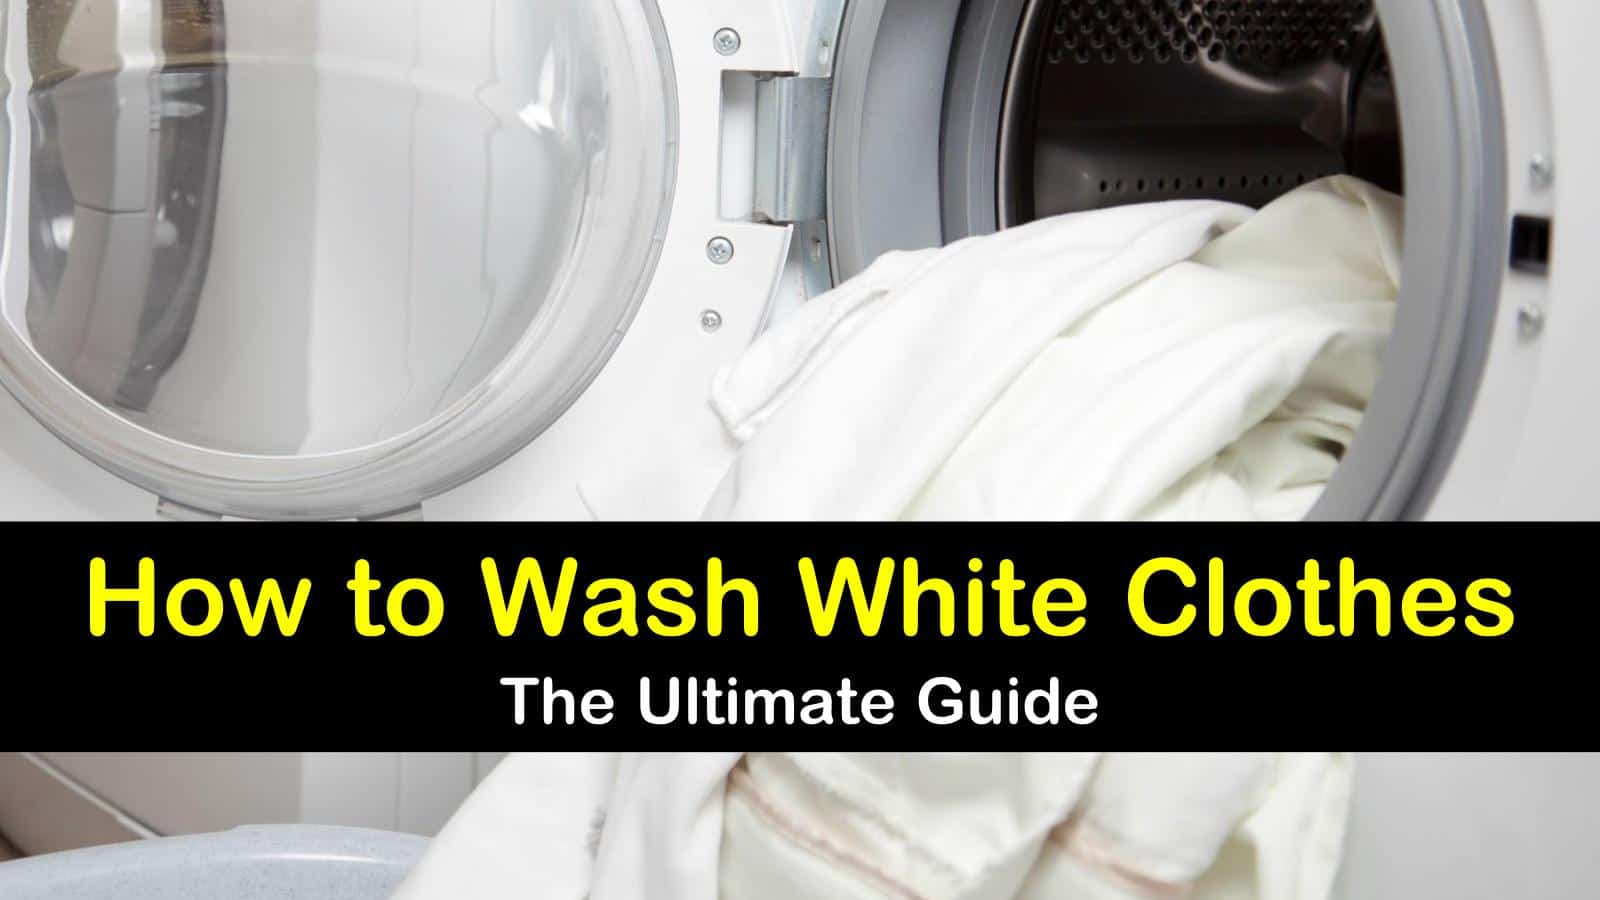 How to Wash White Clothes titleimg1